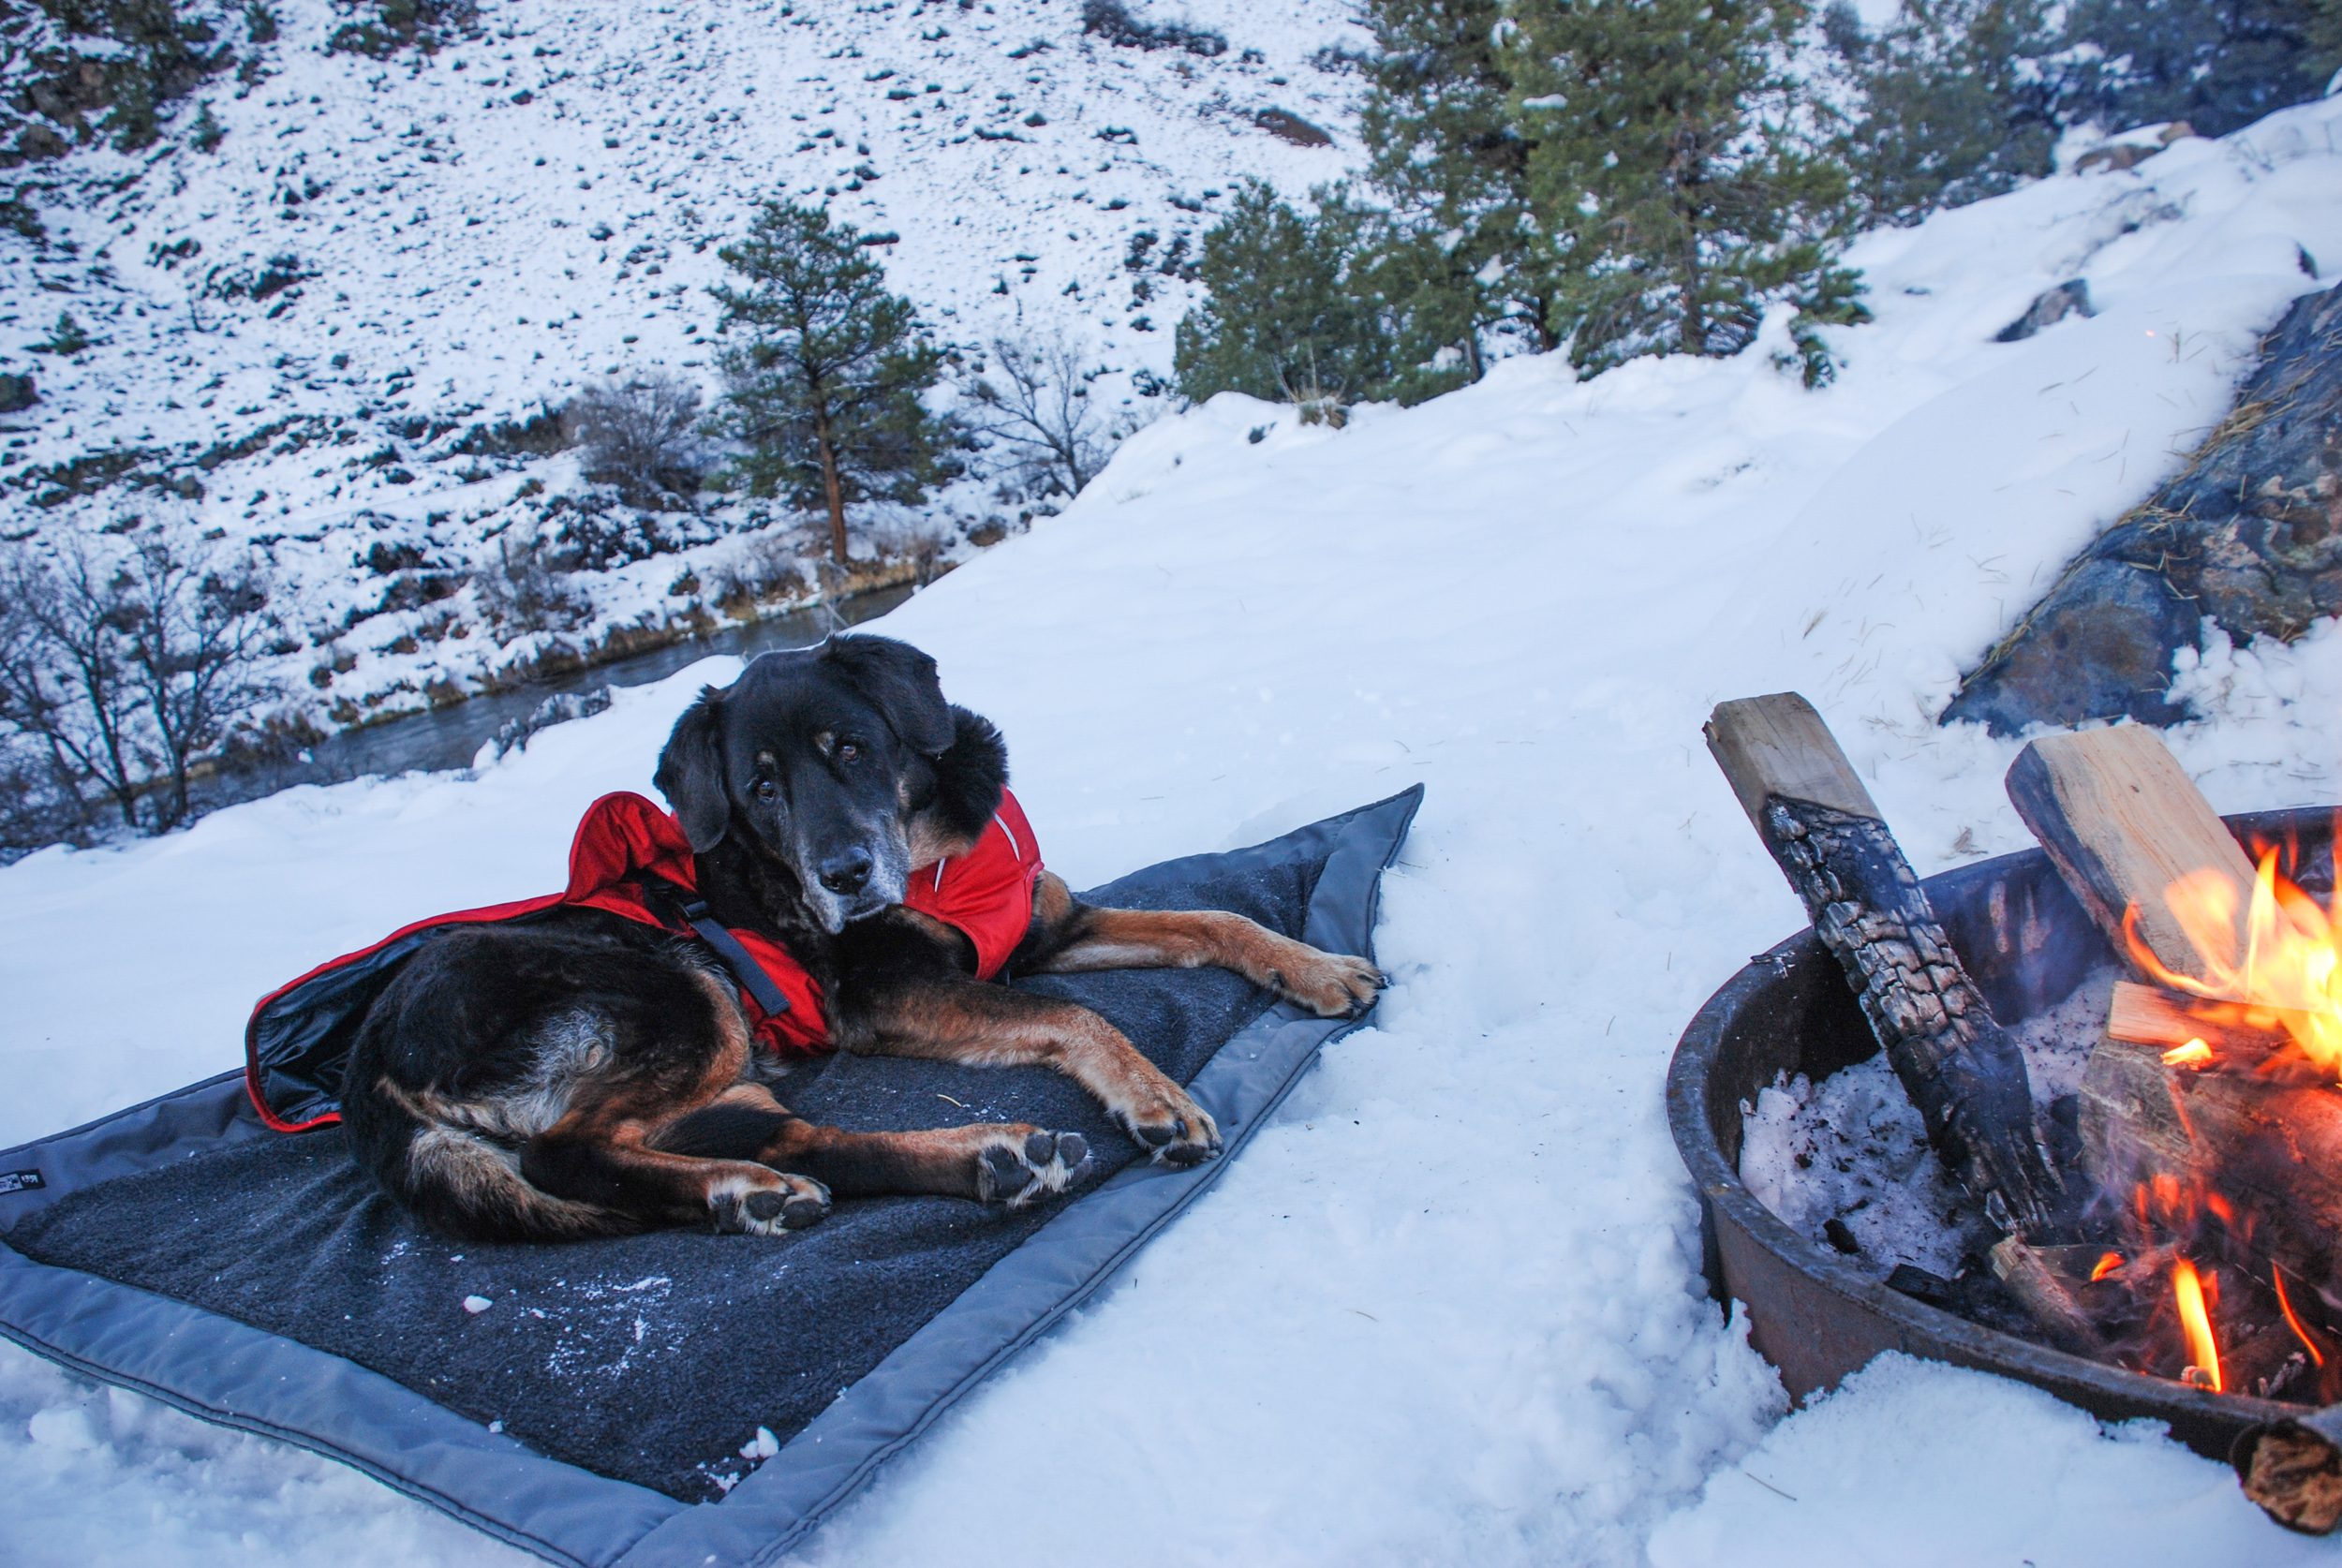 Tybee chilling by a campfire in the snow.